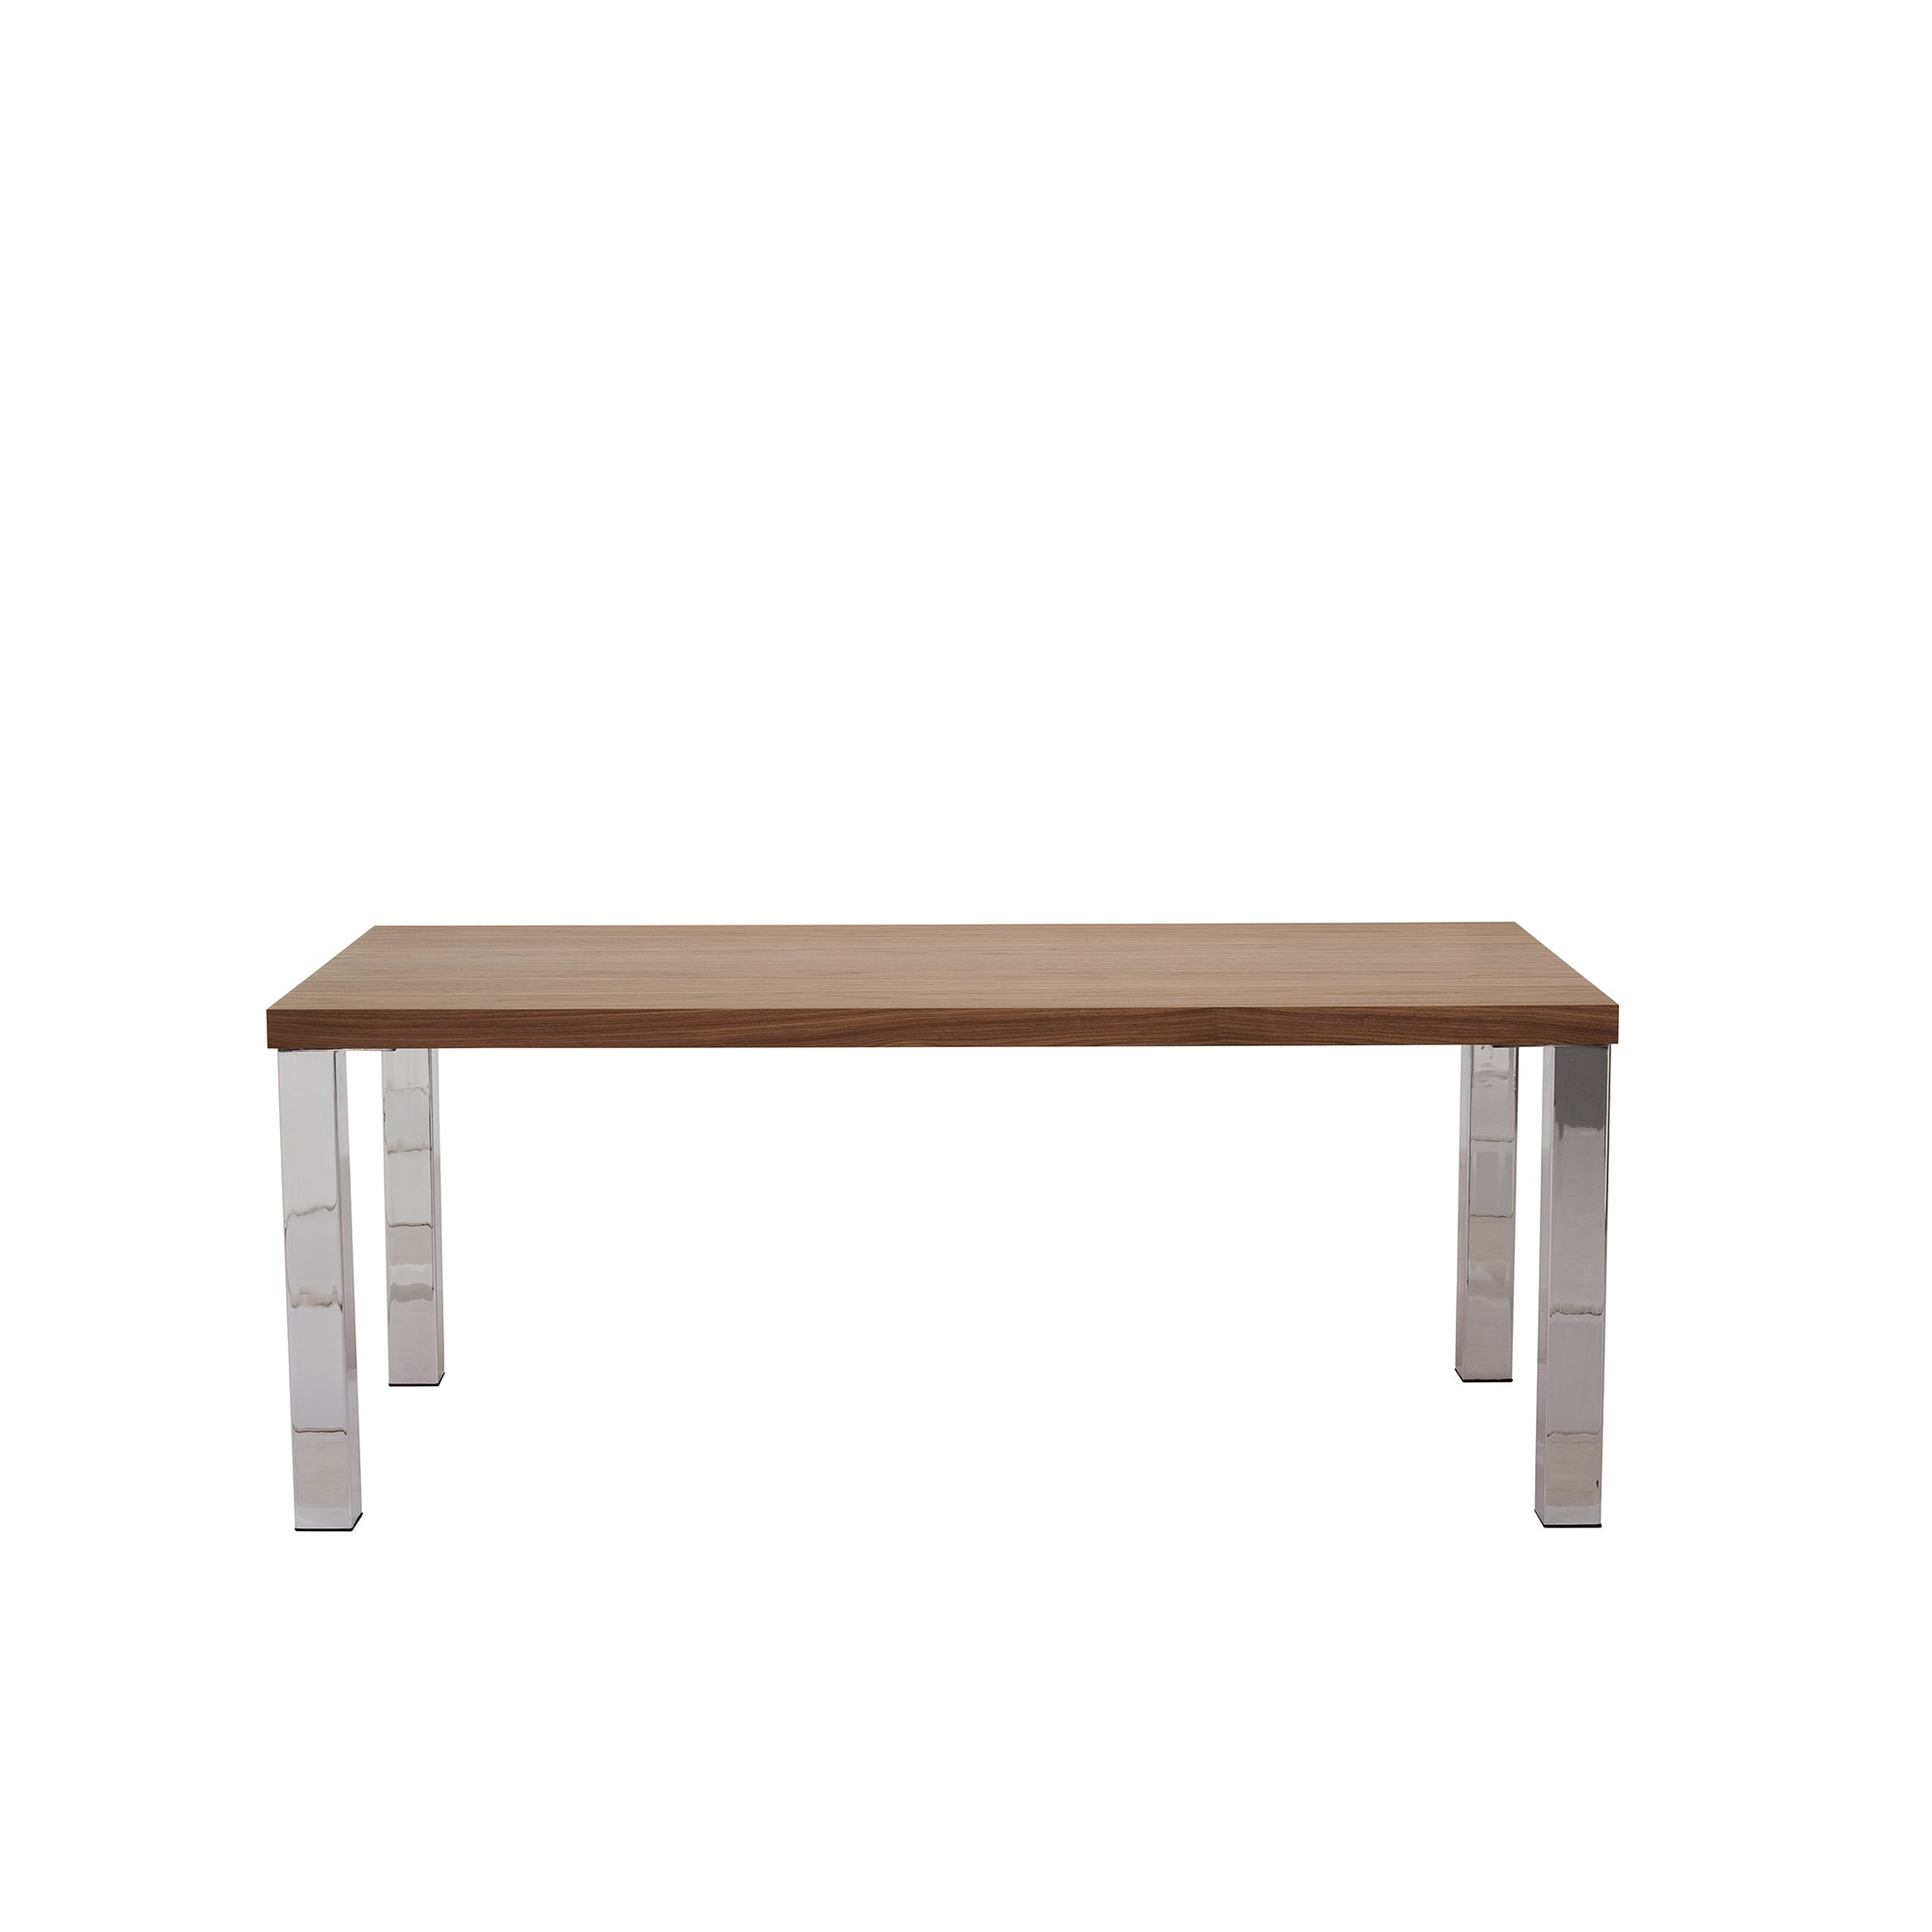 Multi 63 Table with Square Chrome Legs